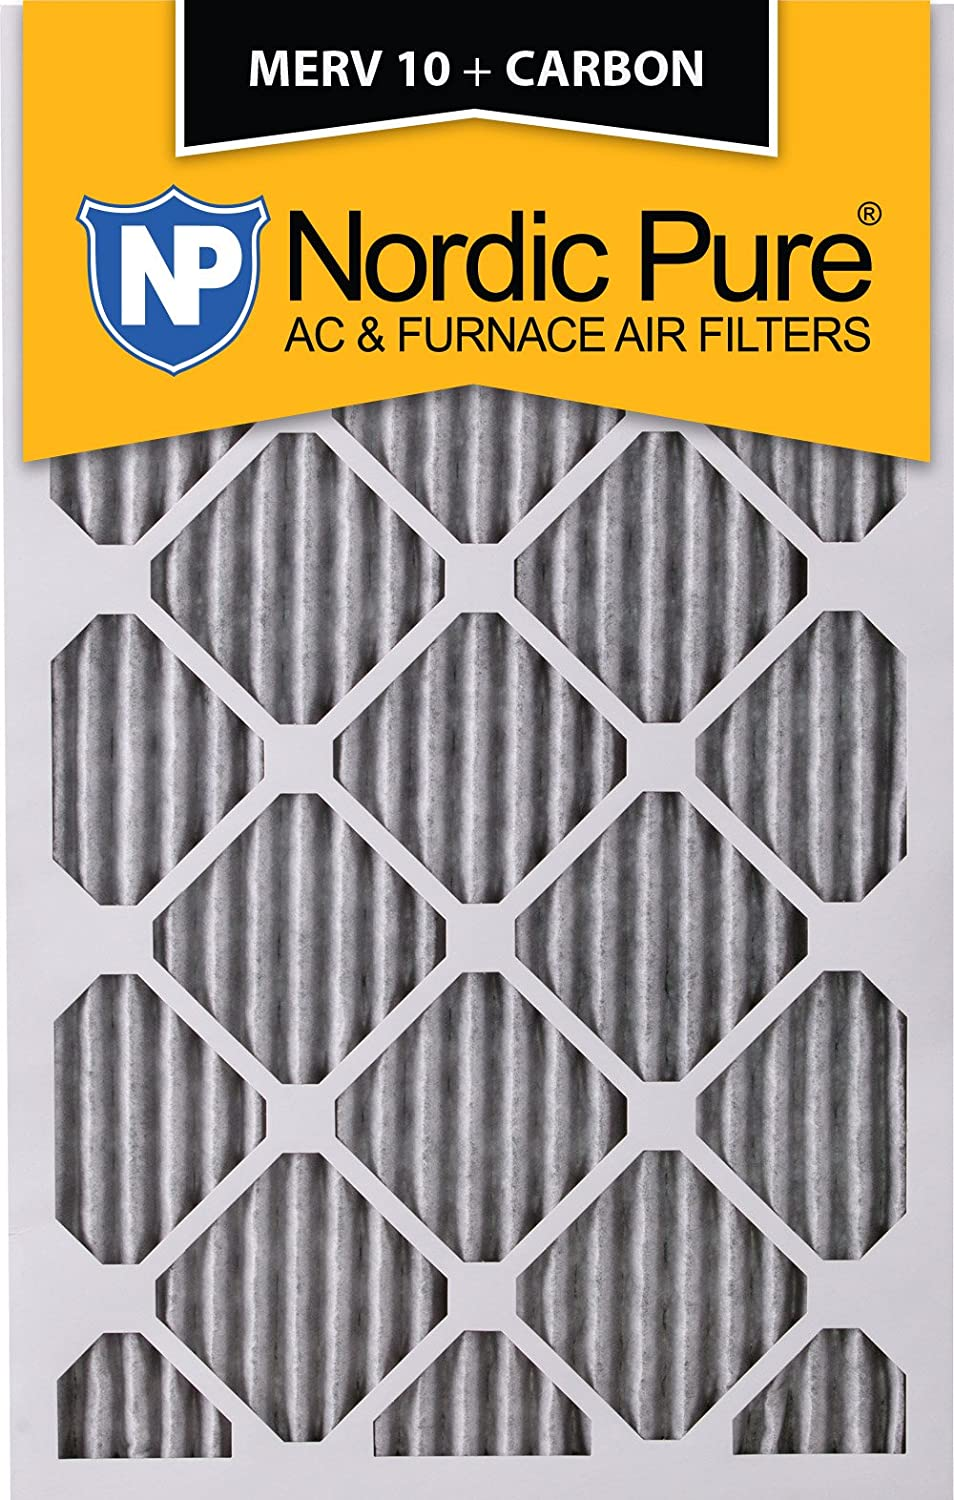 3 Pack 14 x 20 x 1 Nordic Pure 14x20x1 MERV 10 Pleated Plus Carbon AC Furnace Air Filters 3 Piece 3 Pack 14 x 20 x 1